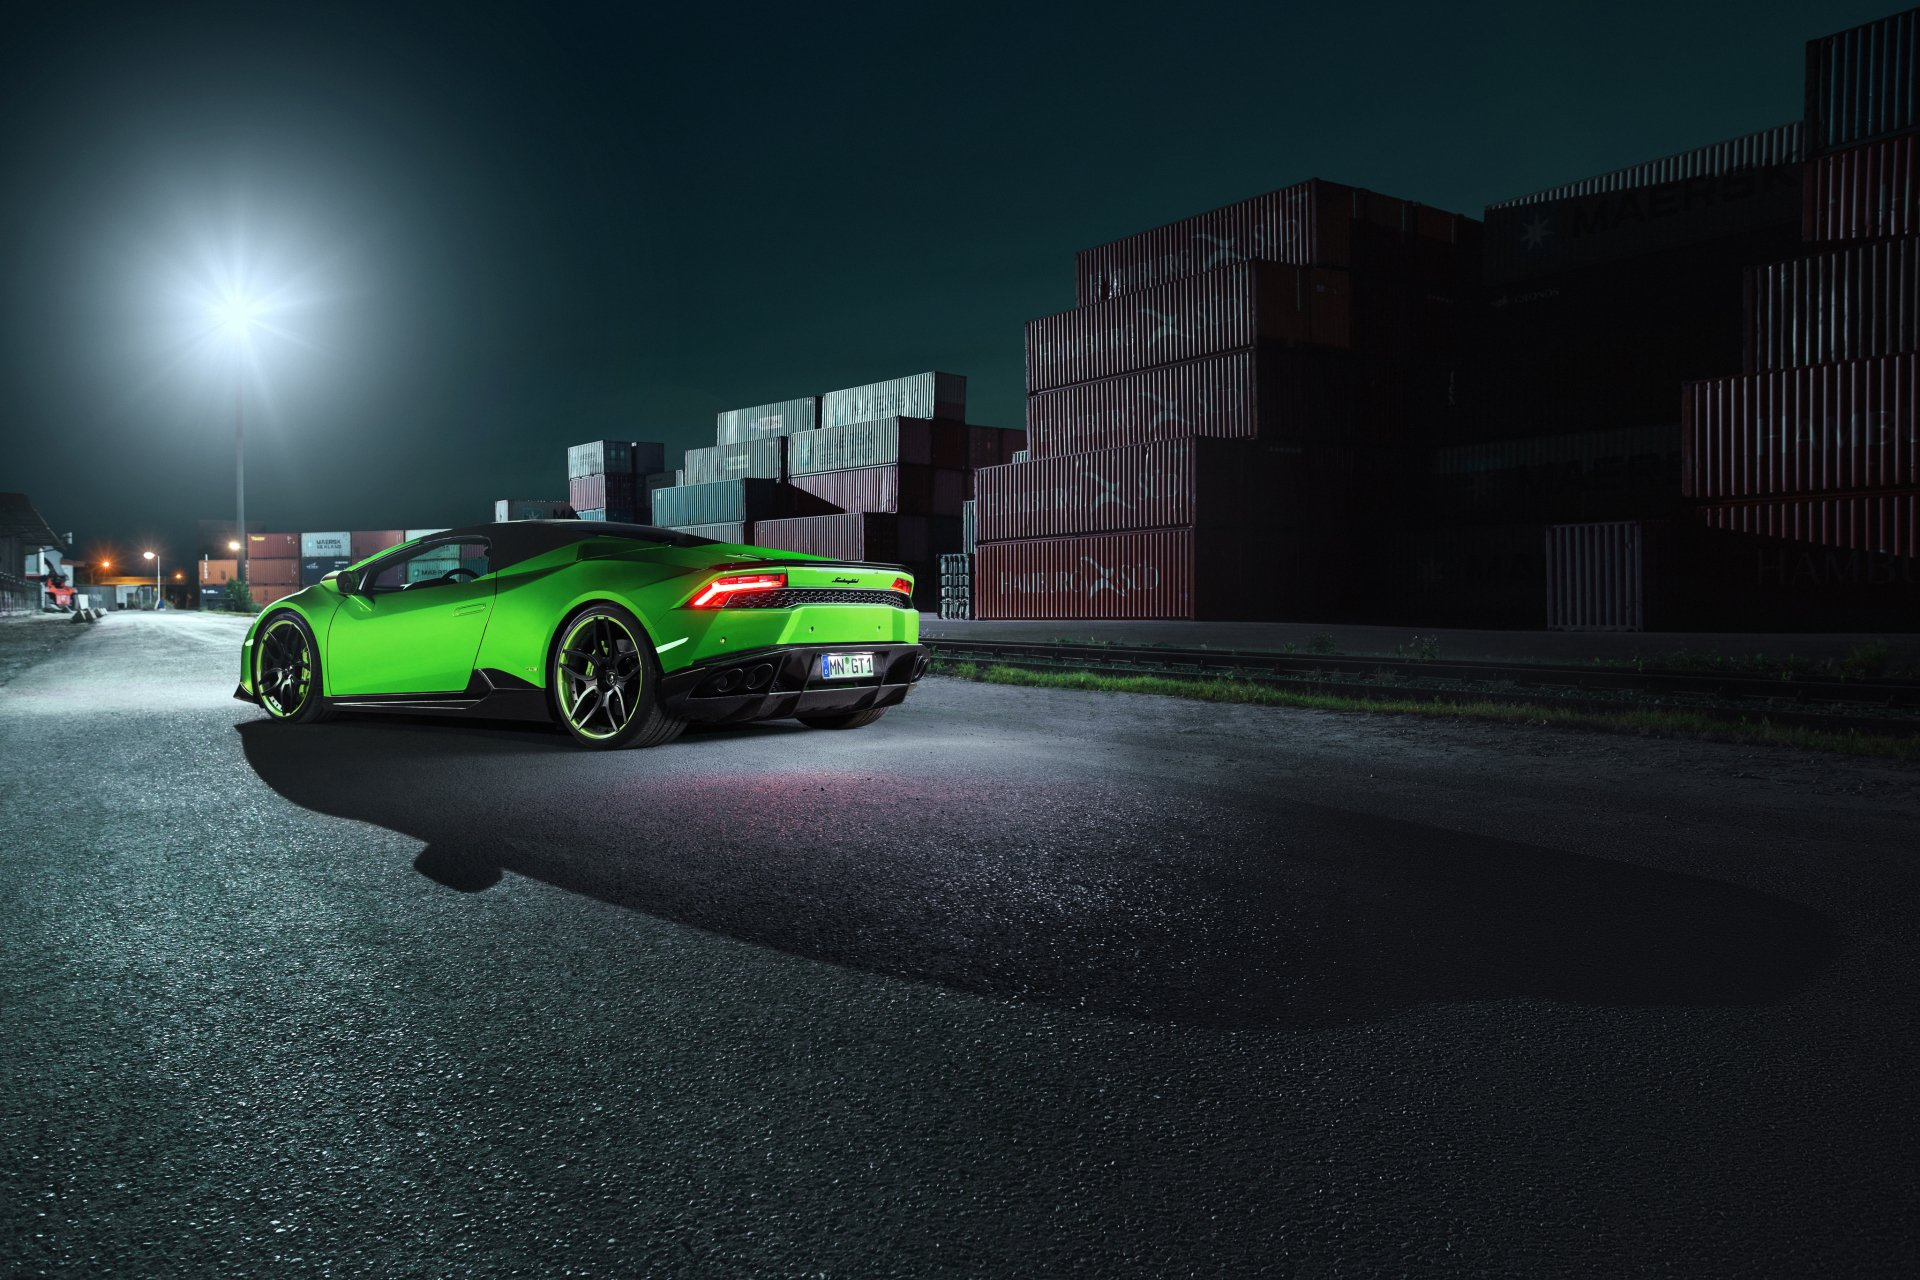 Green Spots Car With Girls Hd Wallpaper: Lamborghini Huracan 4k Ultra Fondo De Pantalla HD